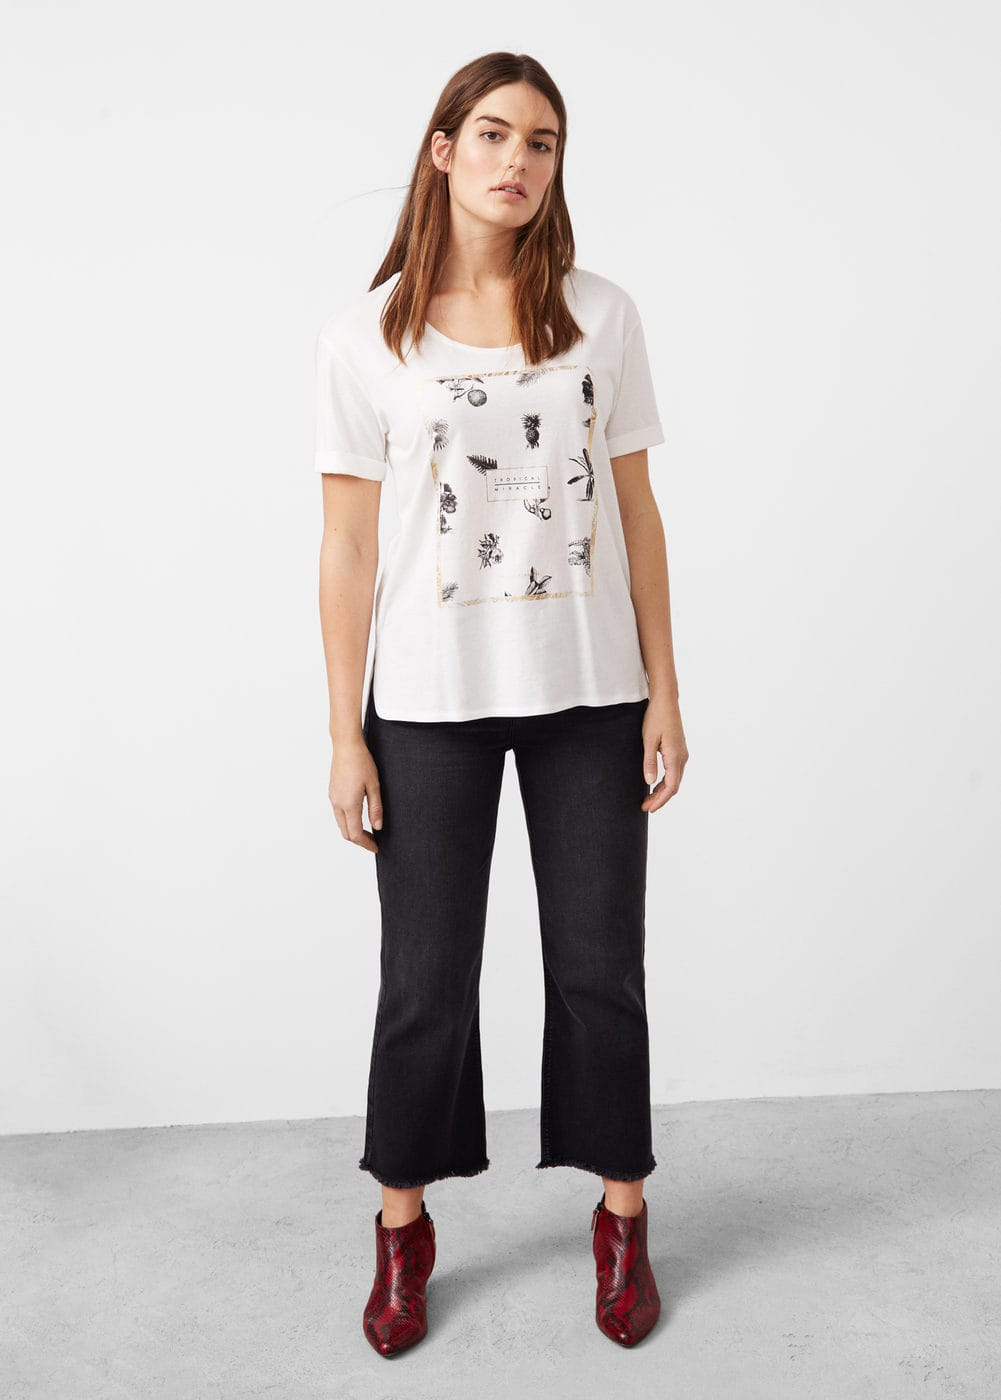 Printed metallic finish t-shirt | VIOLETA BY MANGO